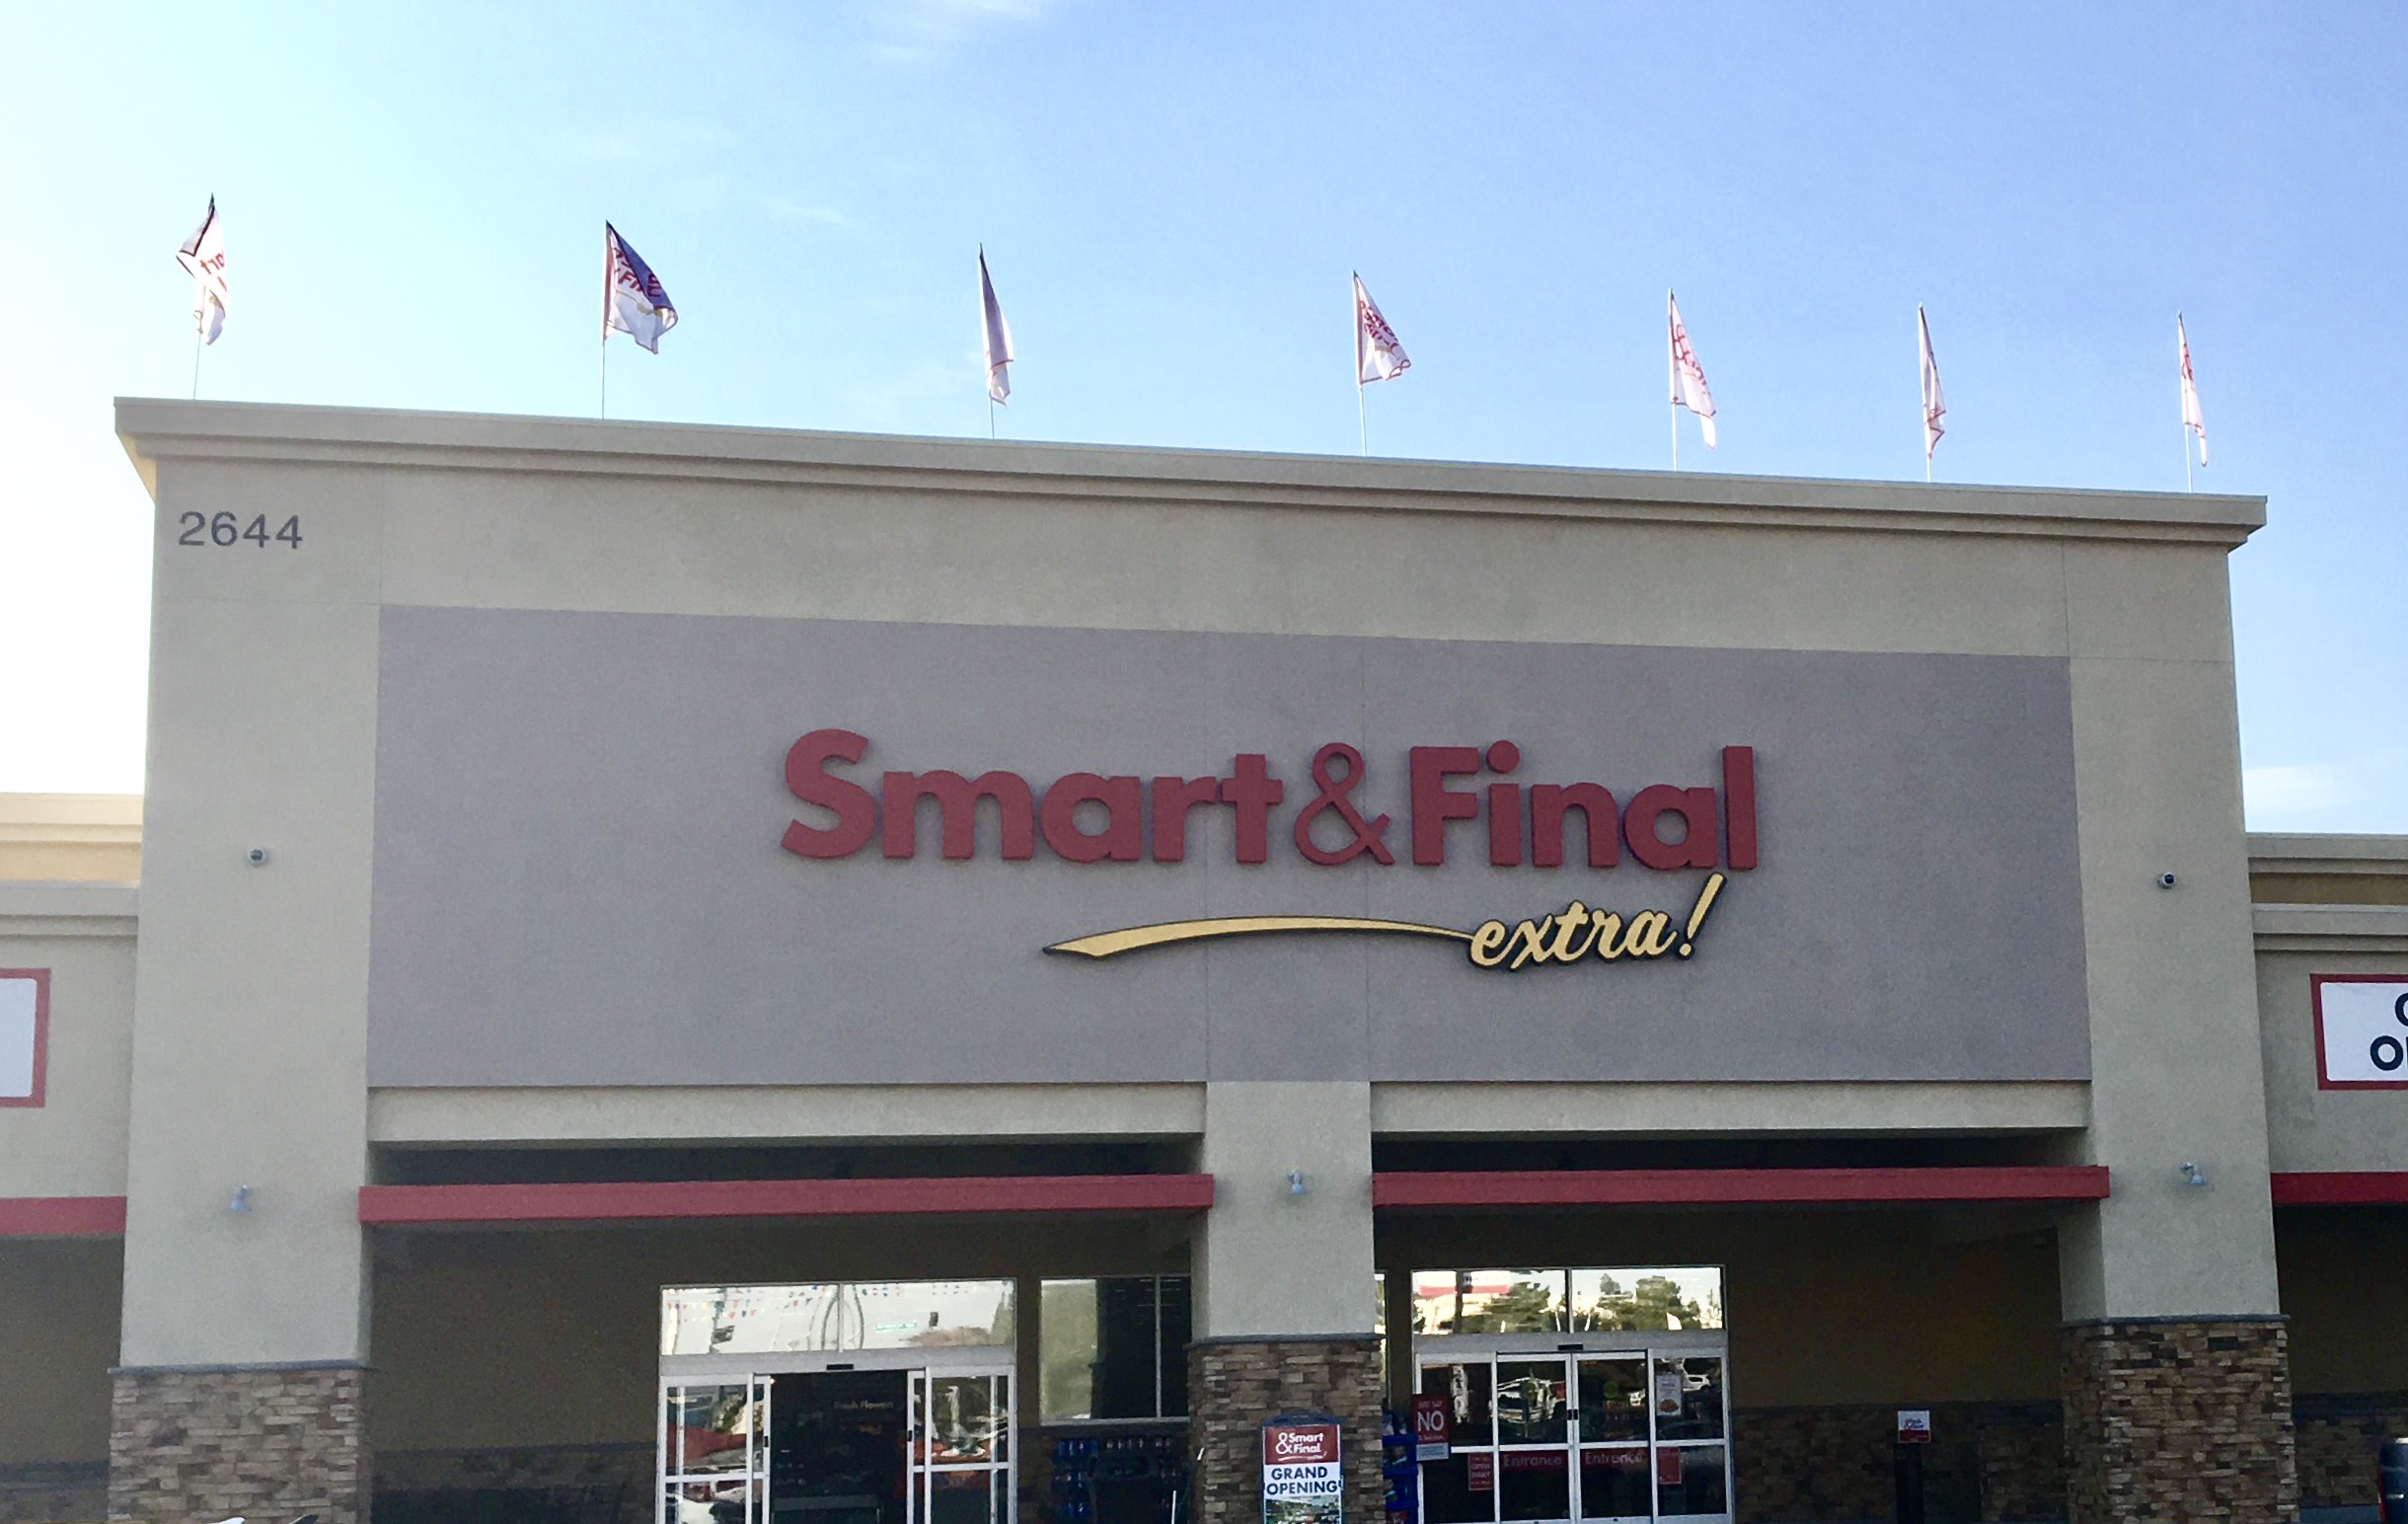 Smart & Final Store Front - Grocery Store in Bakersfield, CA